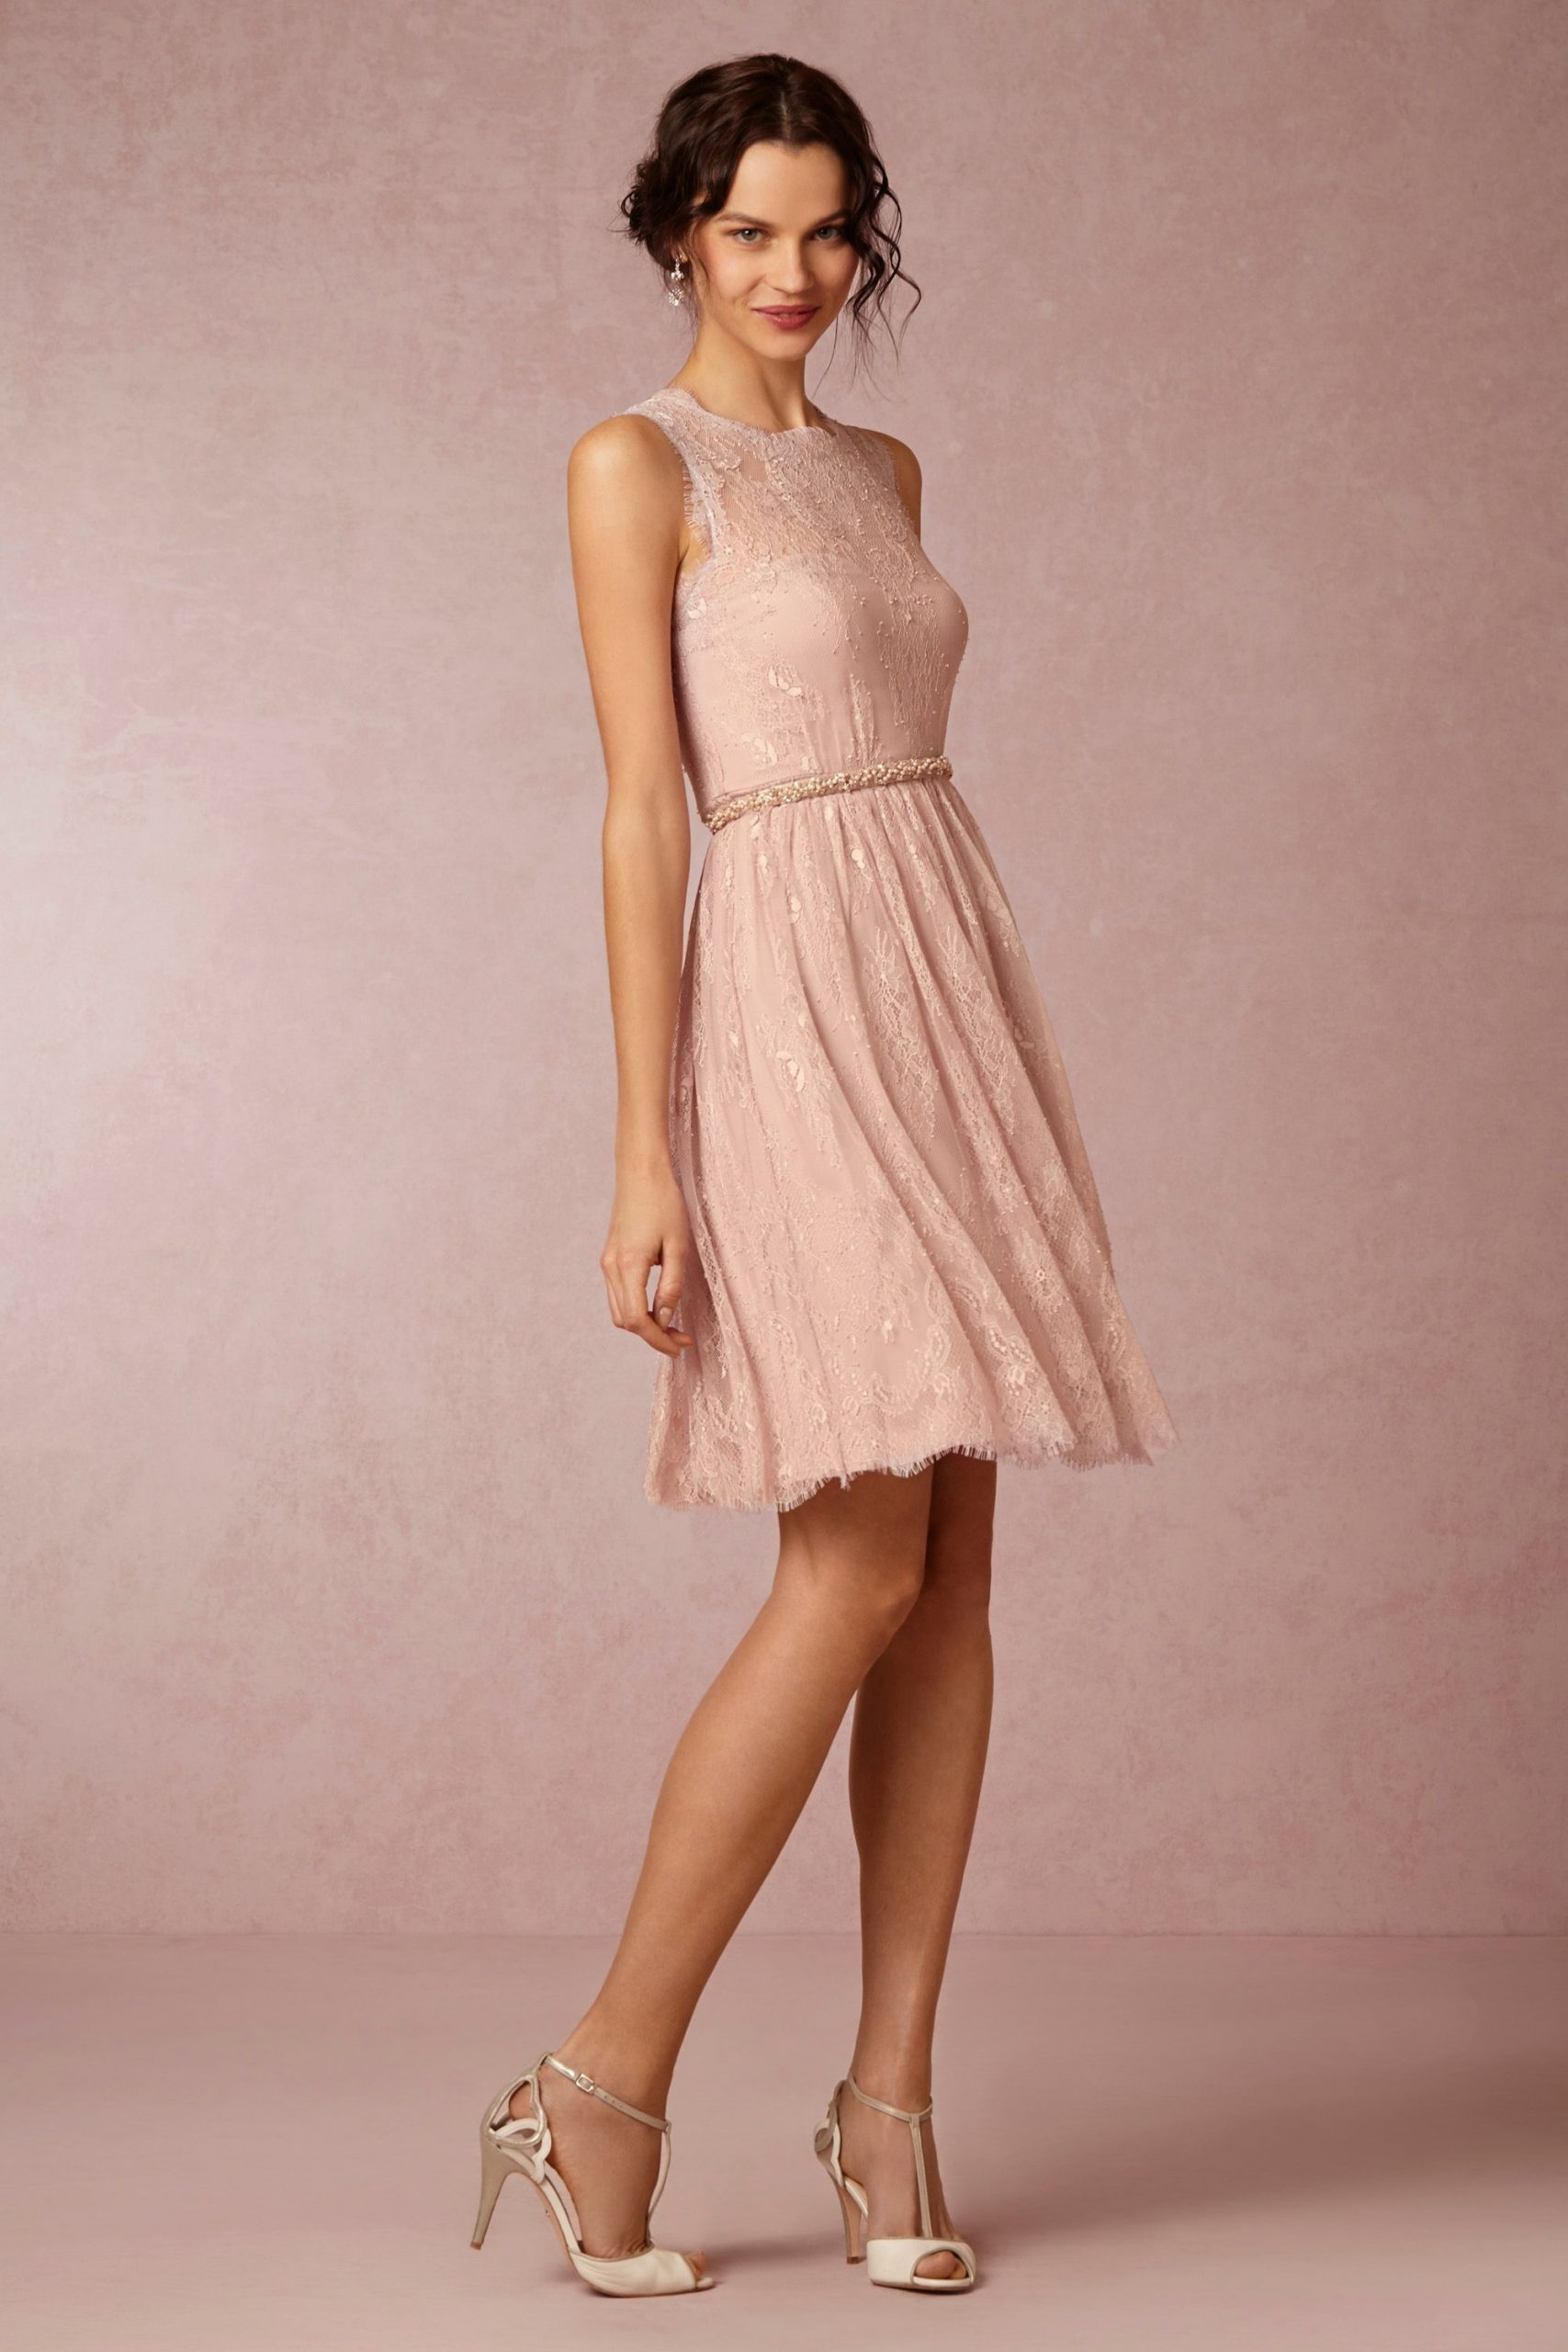 $220 Bhldn Celia Dress In Bridesmaids Bridesmaid Dresses At